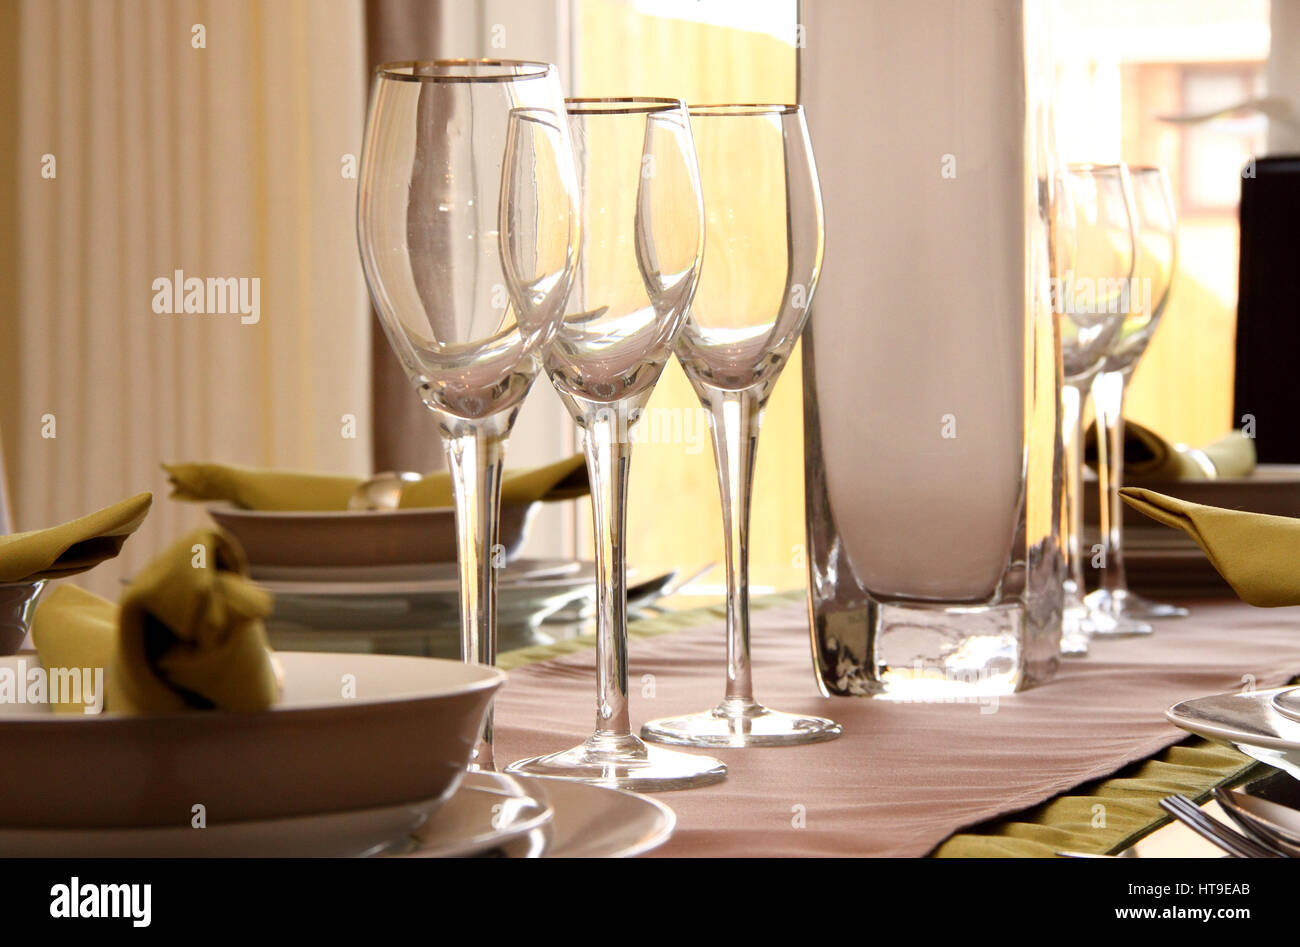 Home interior, dining table, wine glasses, cutlery, eating in, table laid, guests, welcome, friends, lunch, dinner, - Stock Image